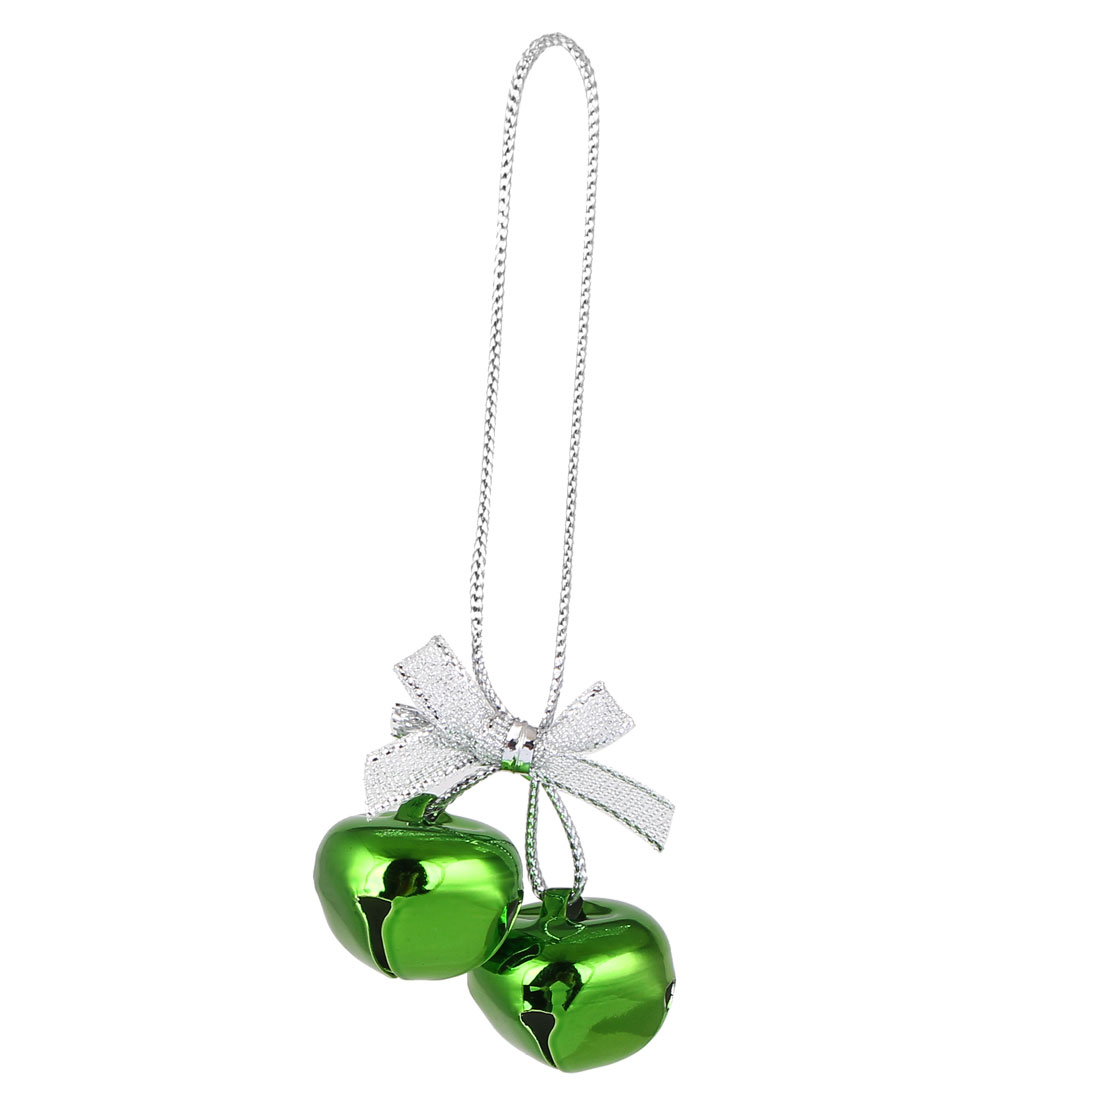 Festival Christmas Tree Metal Bowknot Ring Bell Pendant Hanger Decor Green